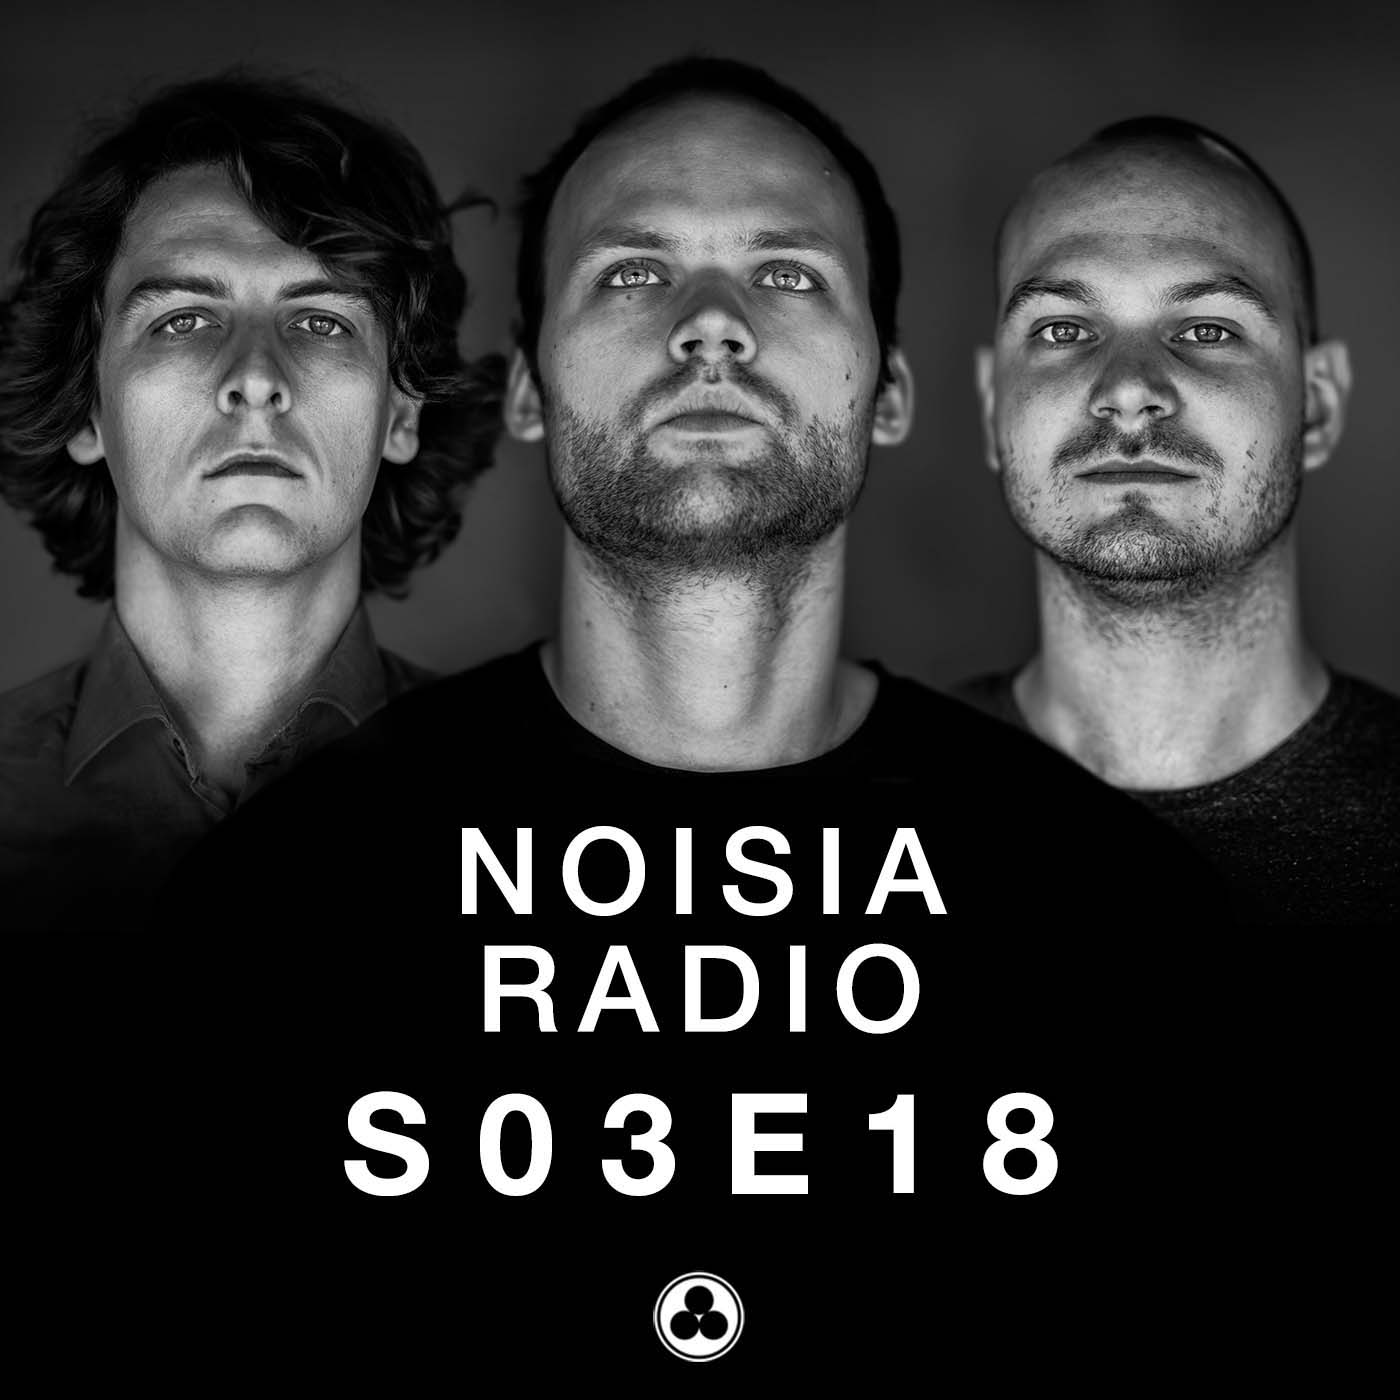 Noisia Radio S03E18